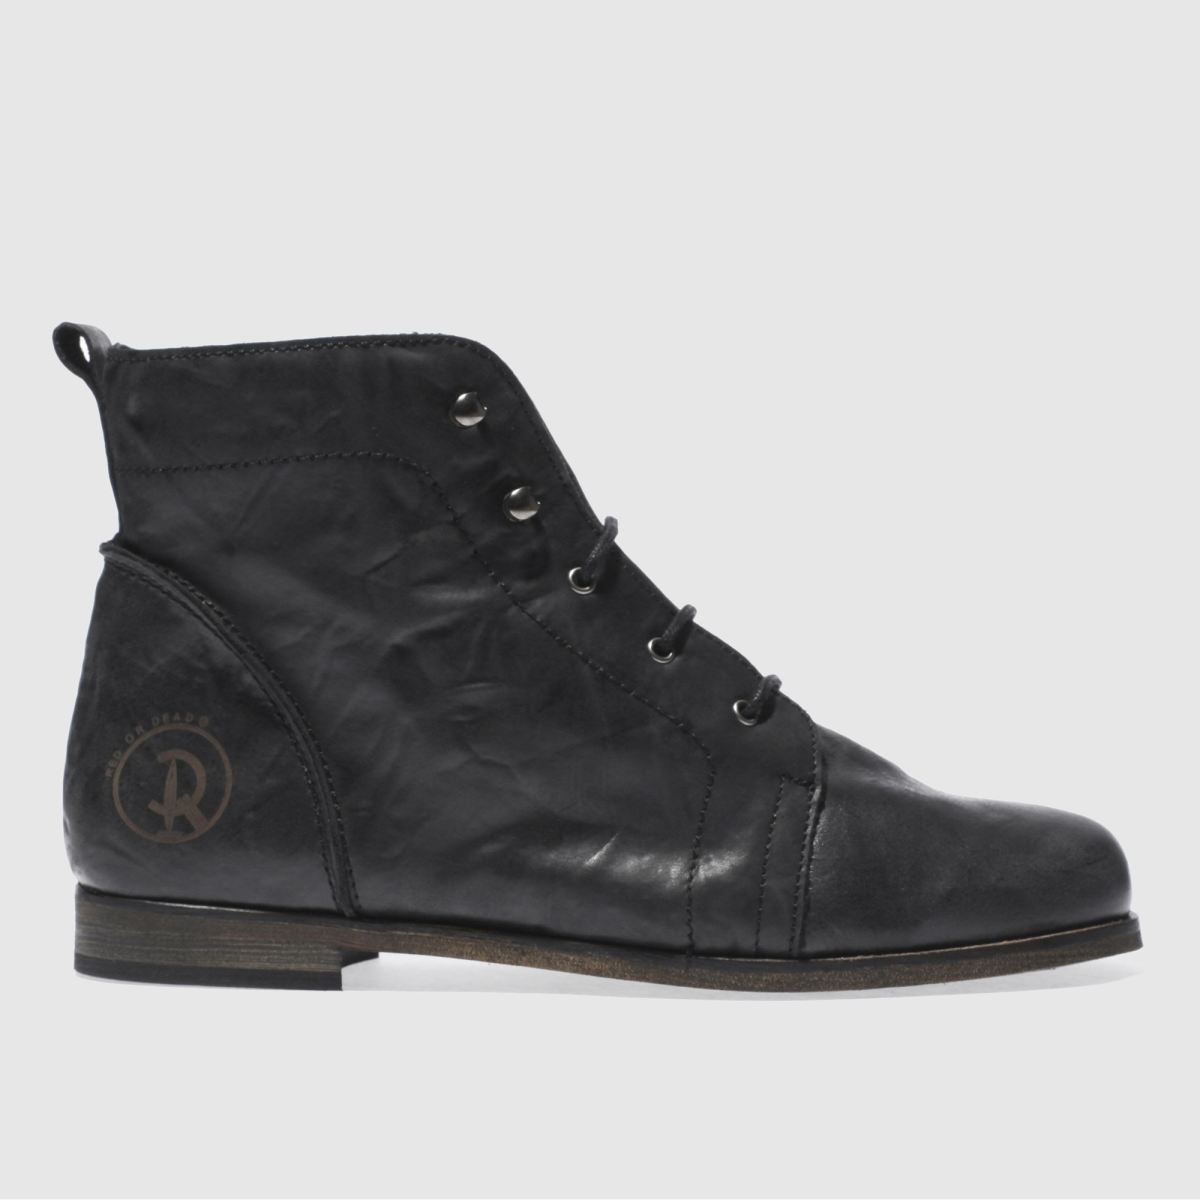 Red Or Dead Black Science Boots